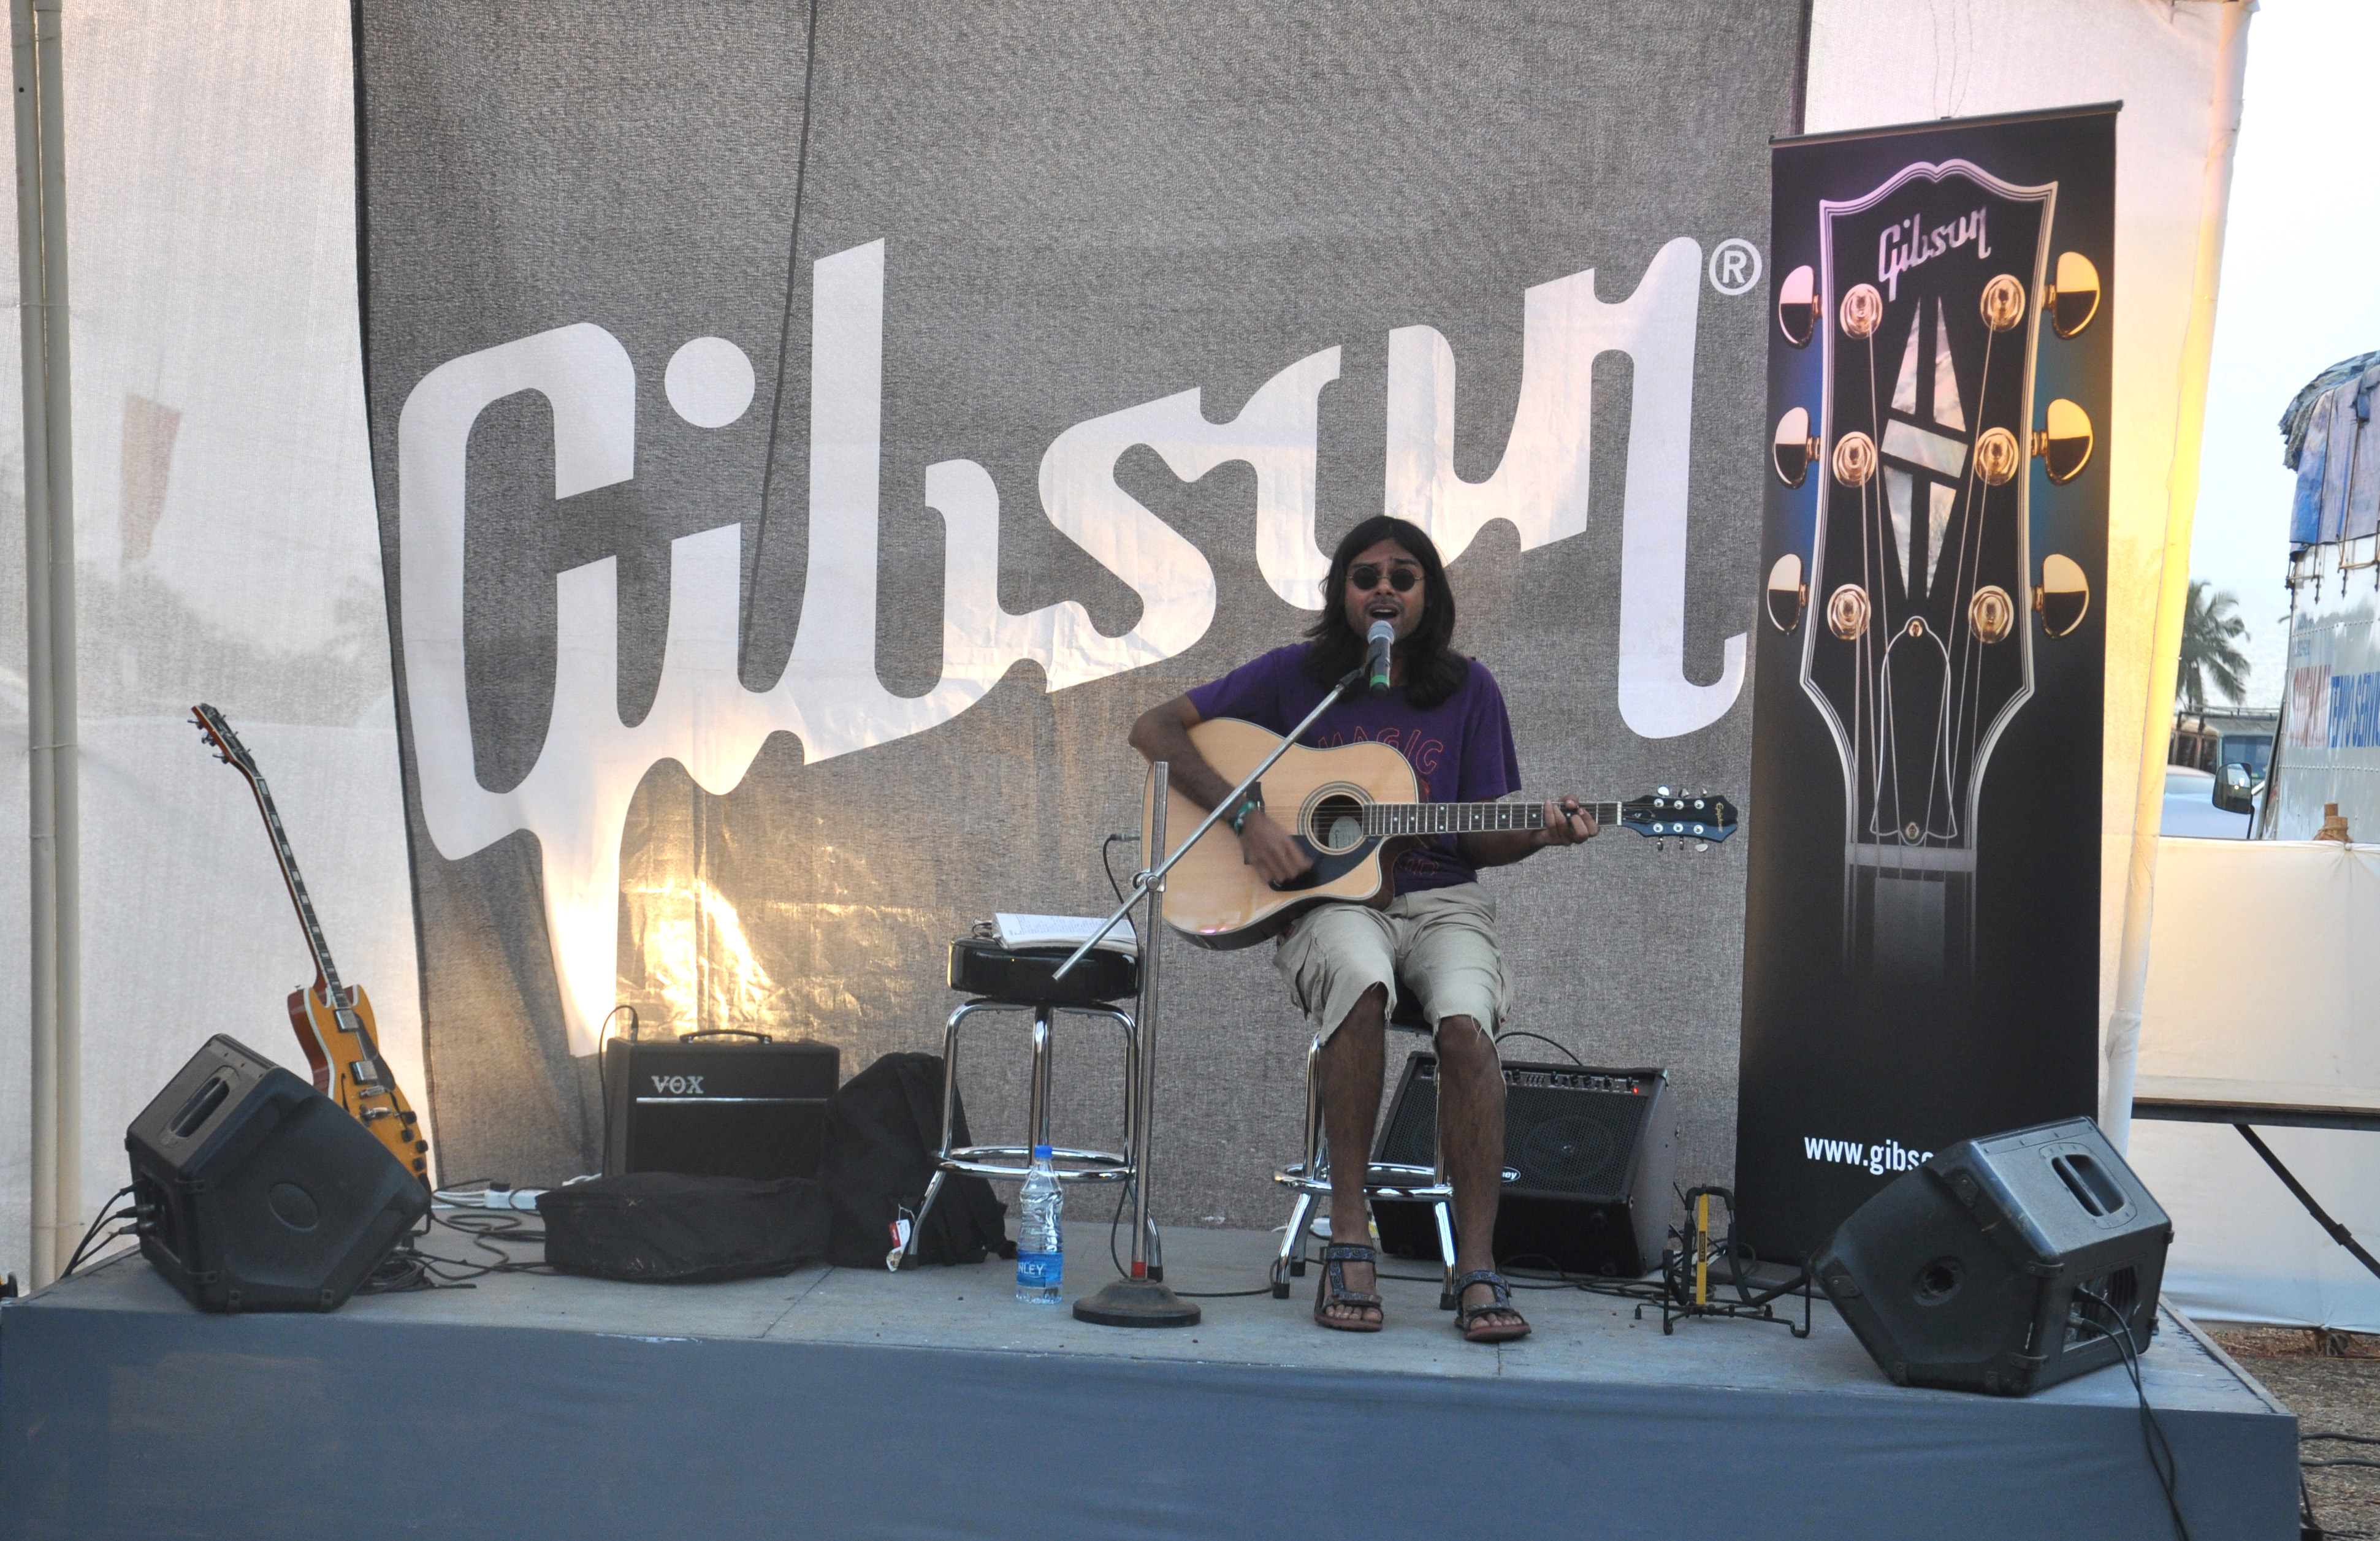 The Gibson stall. Anyone could pick up a guitar and strum away.